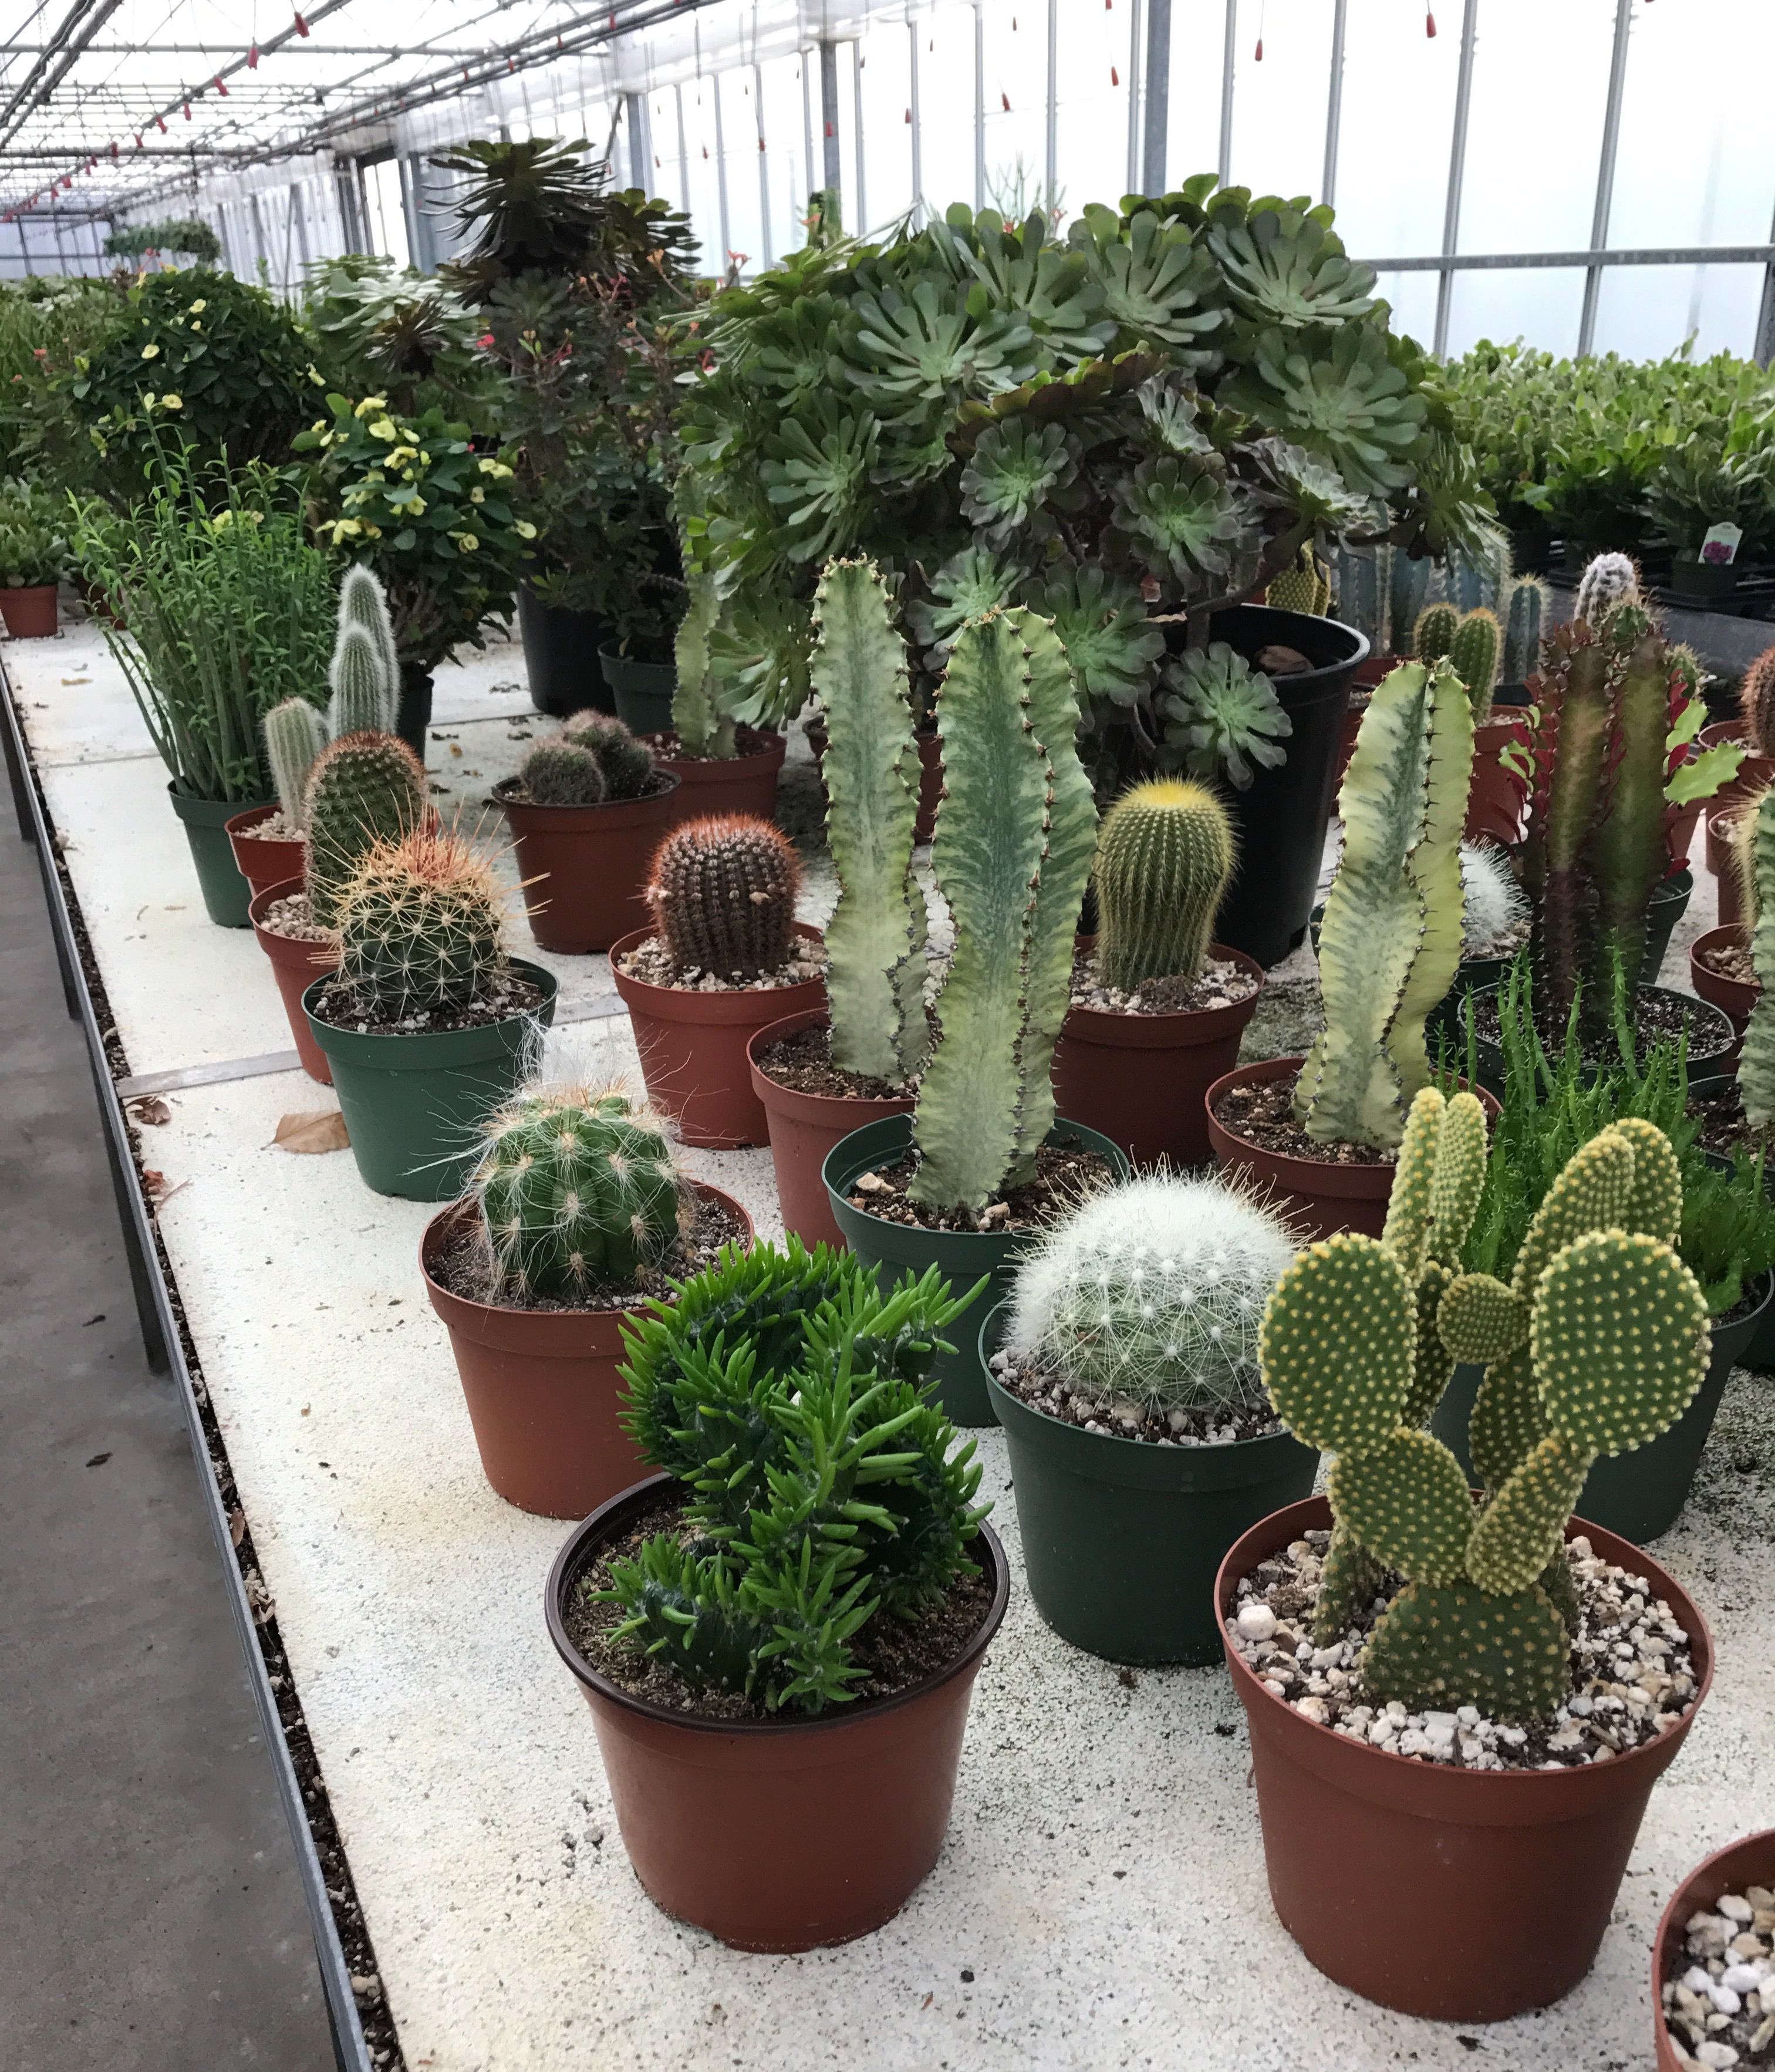 An Assortment Of Cactus Flanked By A Large Black Rose Aeoneum - Japan is going mad over these tiny succulents that look like bunny ears